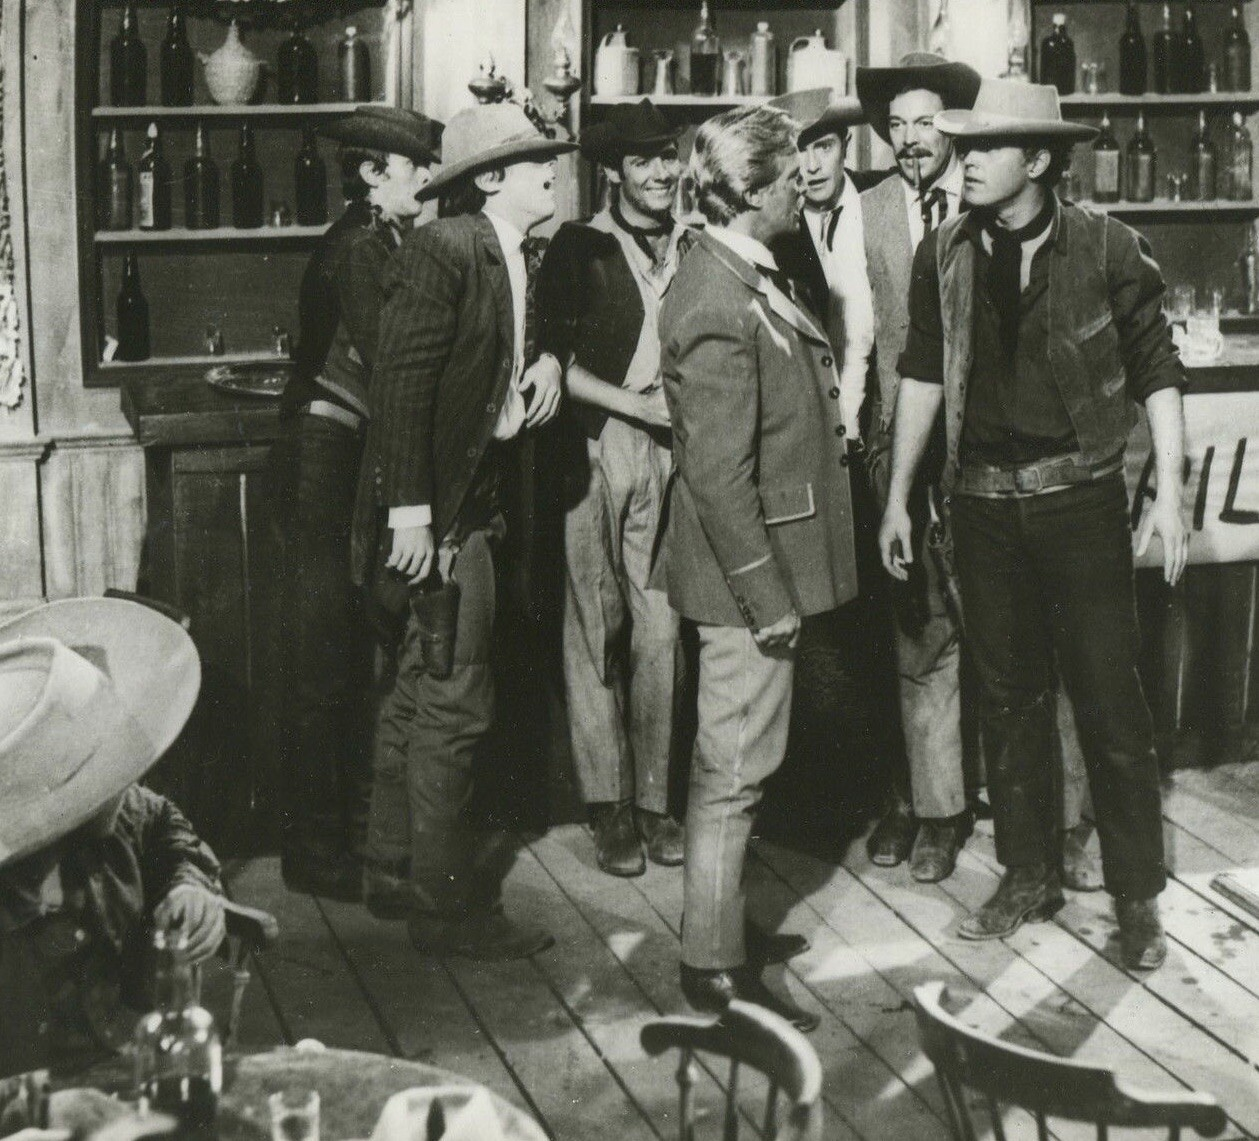 The Christmas Kid  Jeffrey Hunter  In a group at the bar